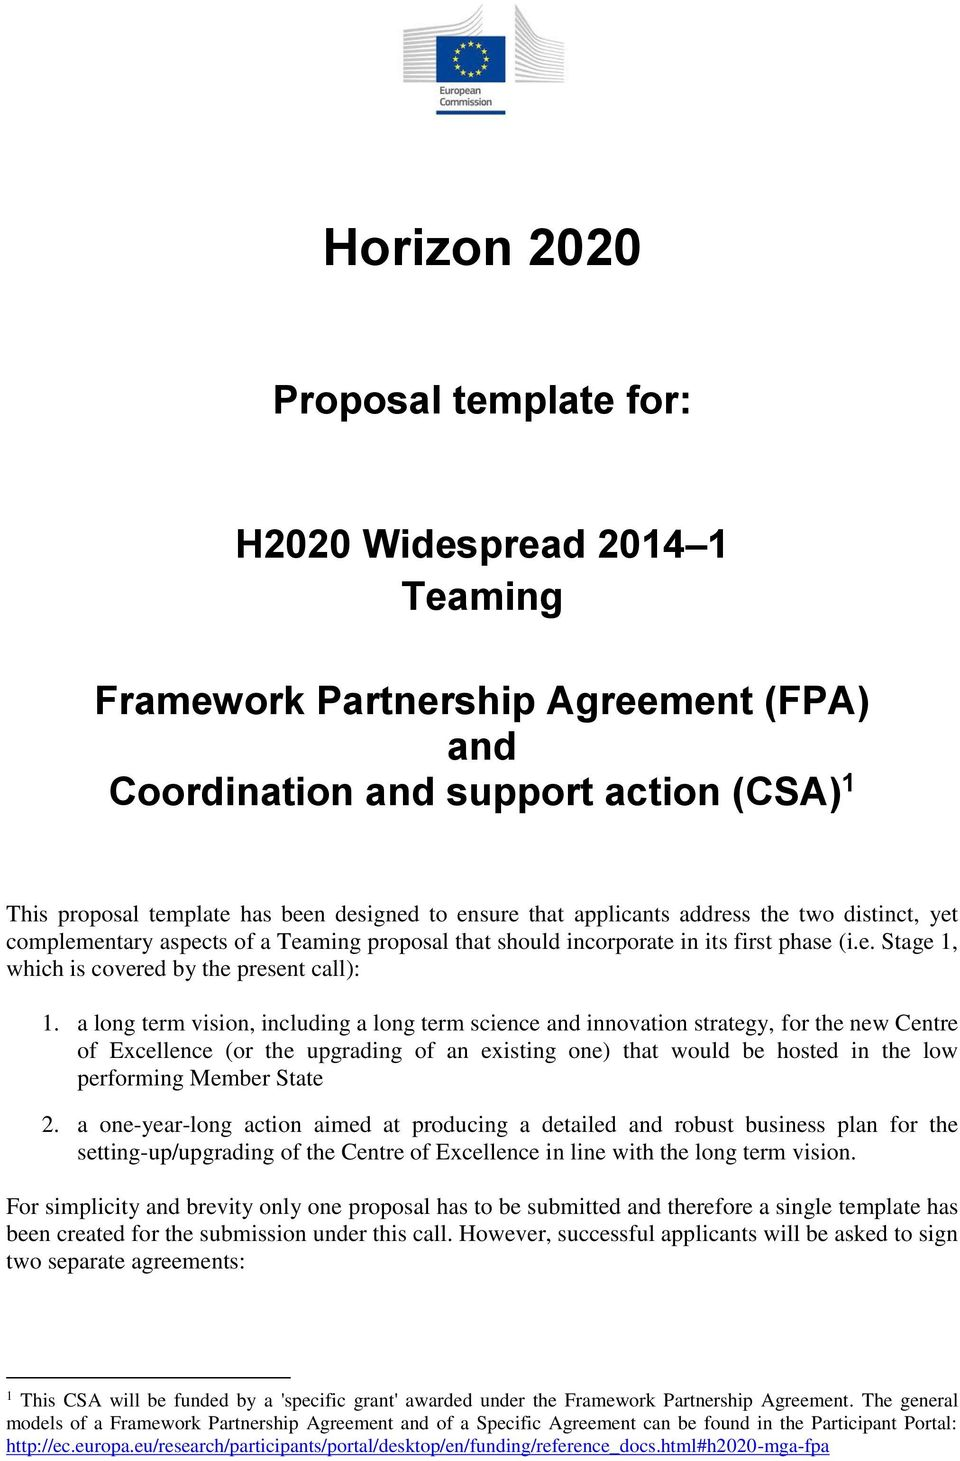 Horizon Proposal Template For H2020 Widespread Teaming Pdf